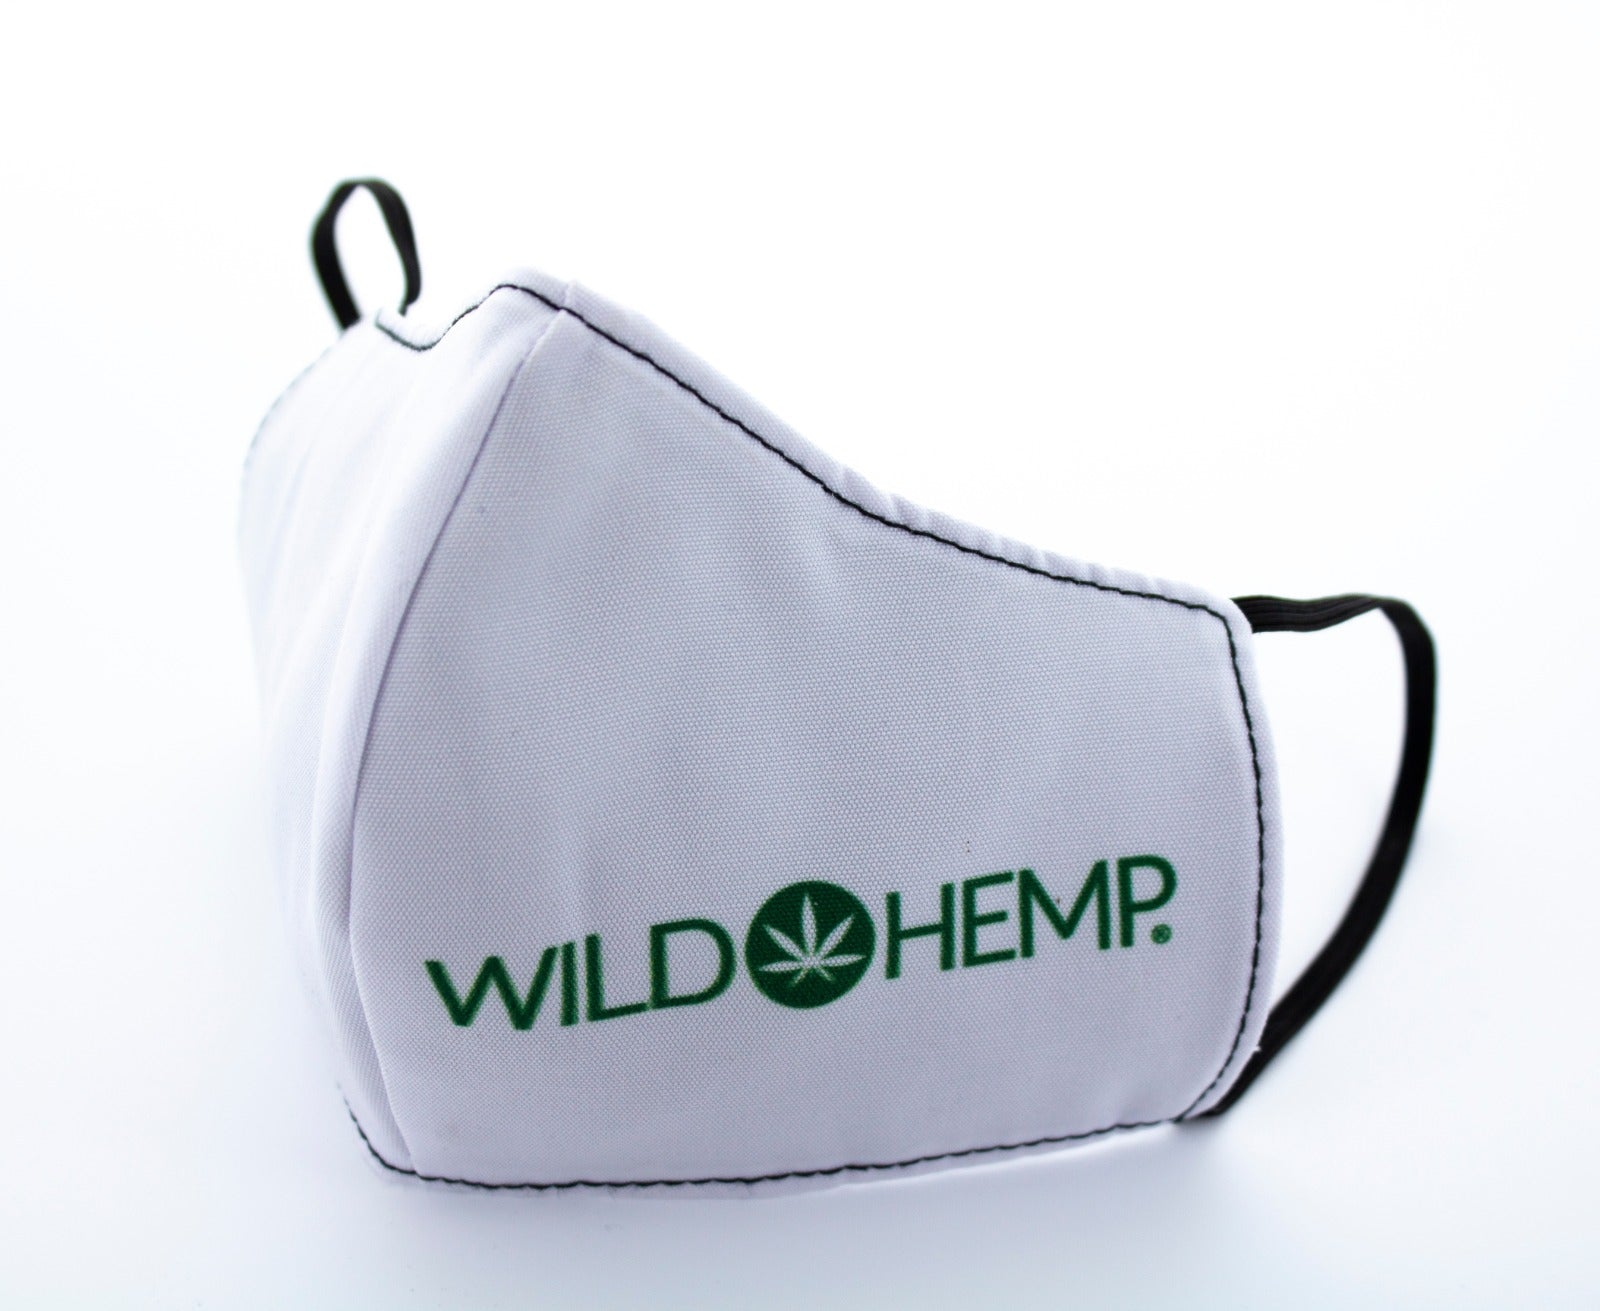 Wild Hemp Fabric Mask